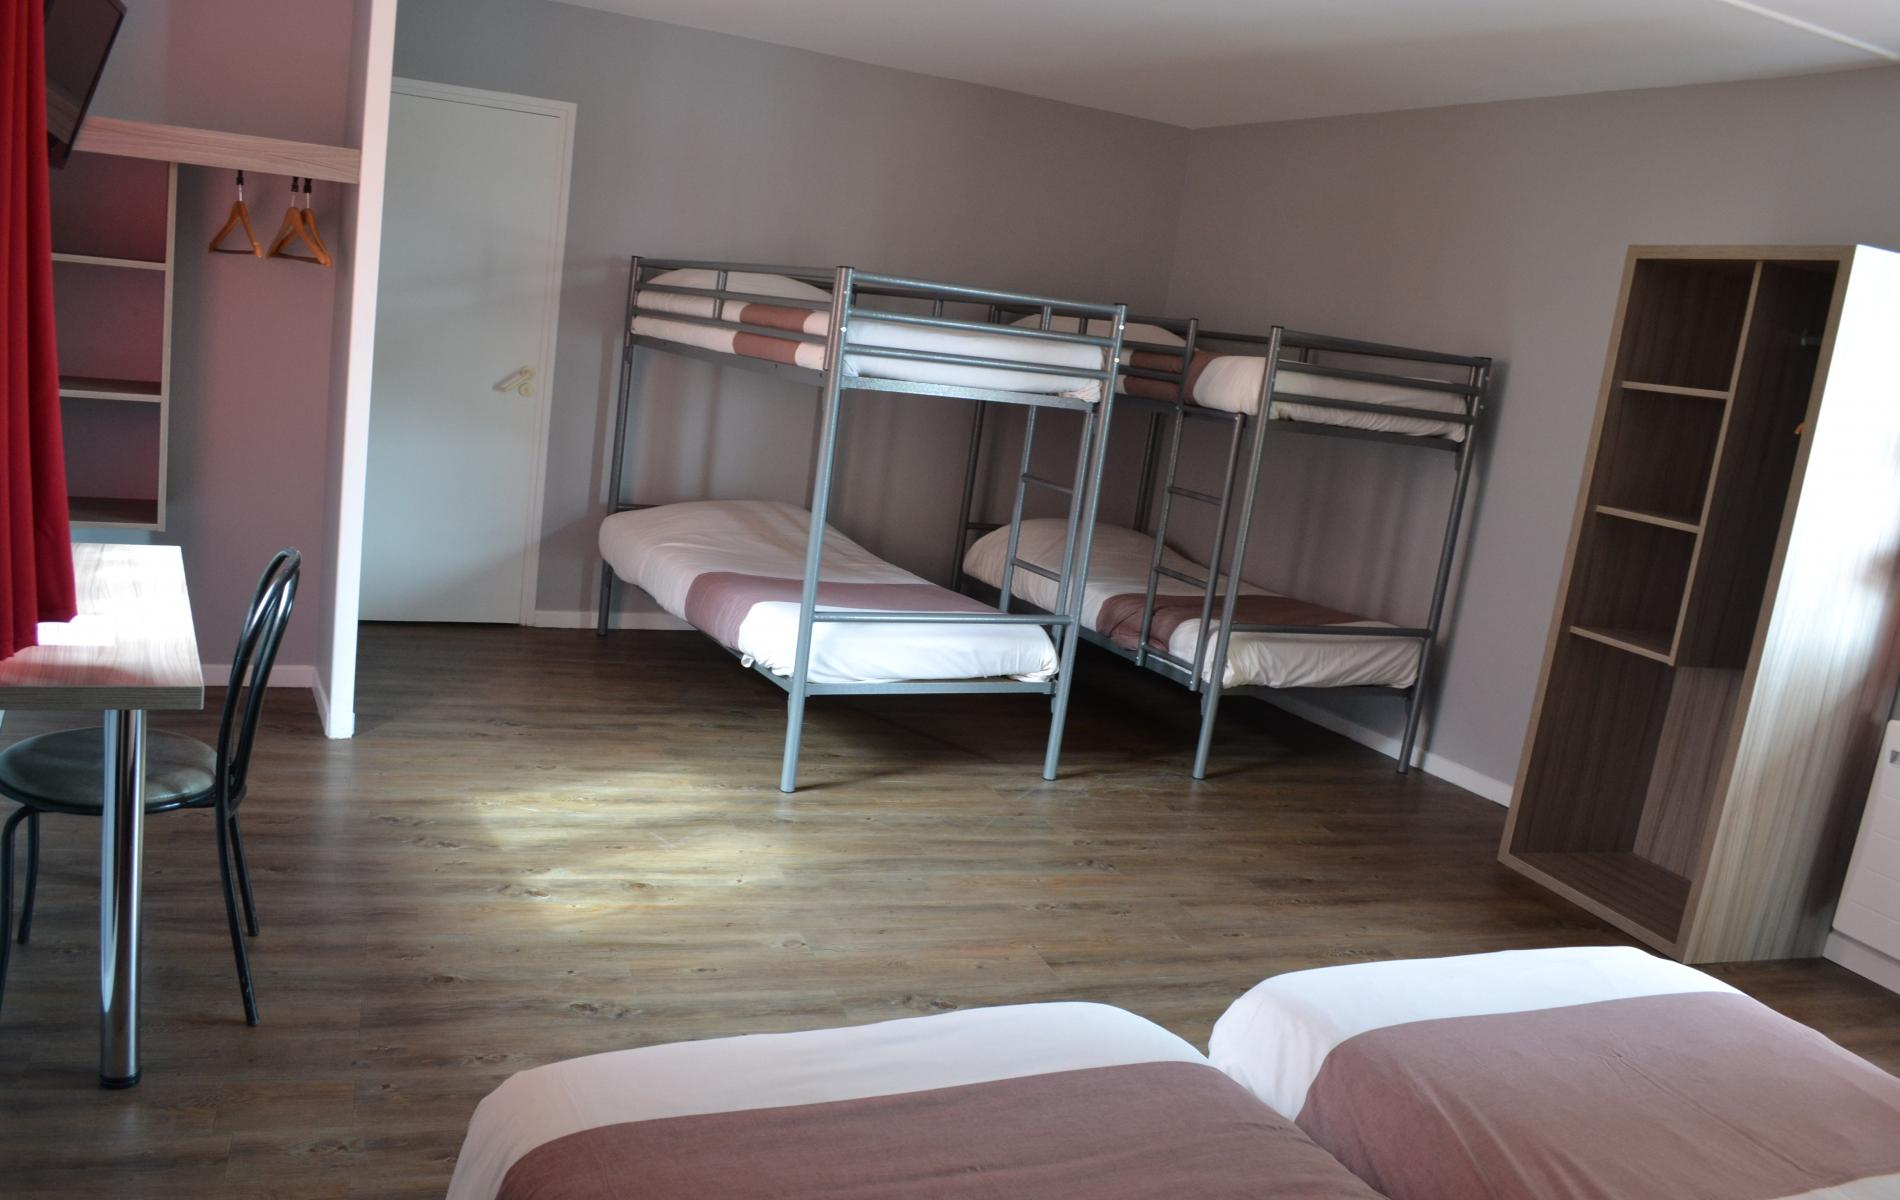 Chambre 6 personnes tarifs h tel eisenhower h tel port for Chambre hotel normandie